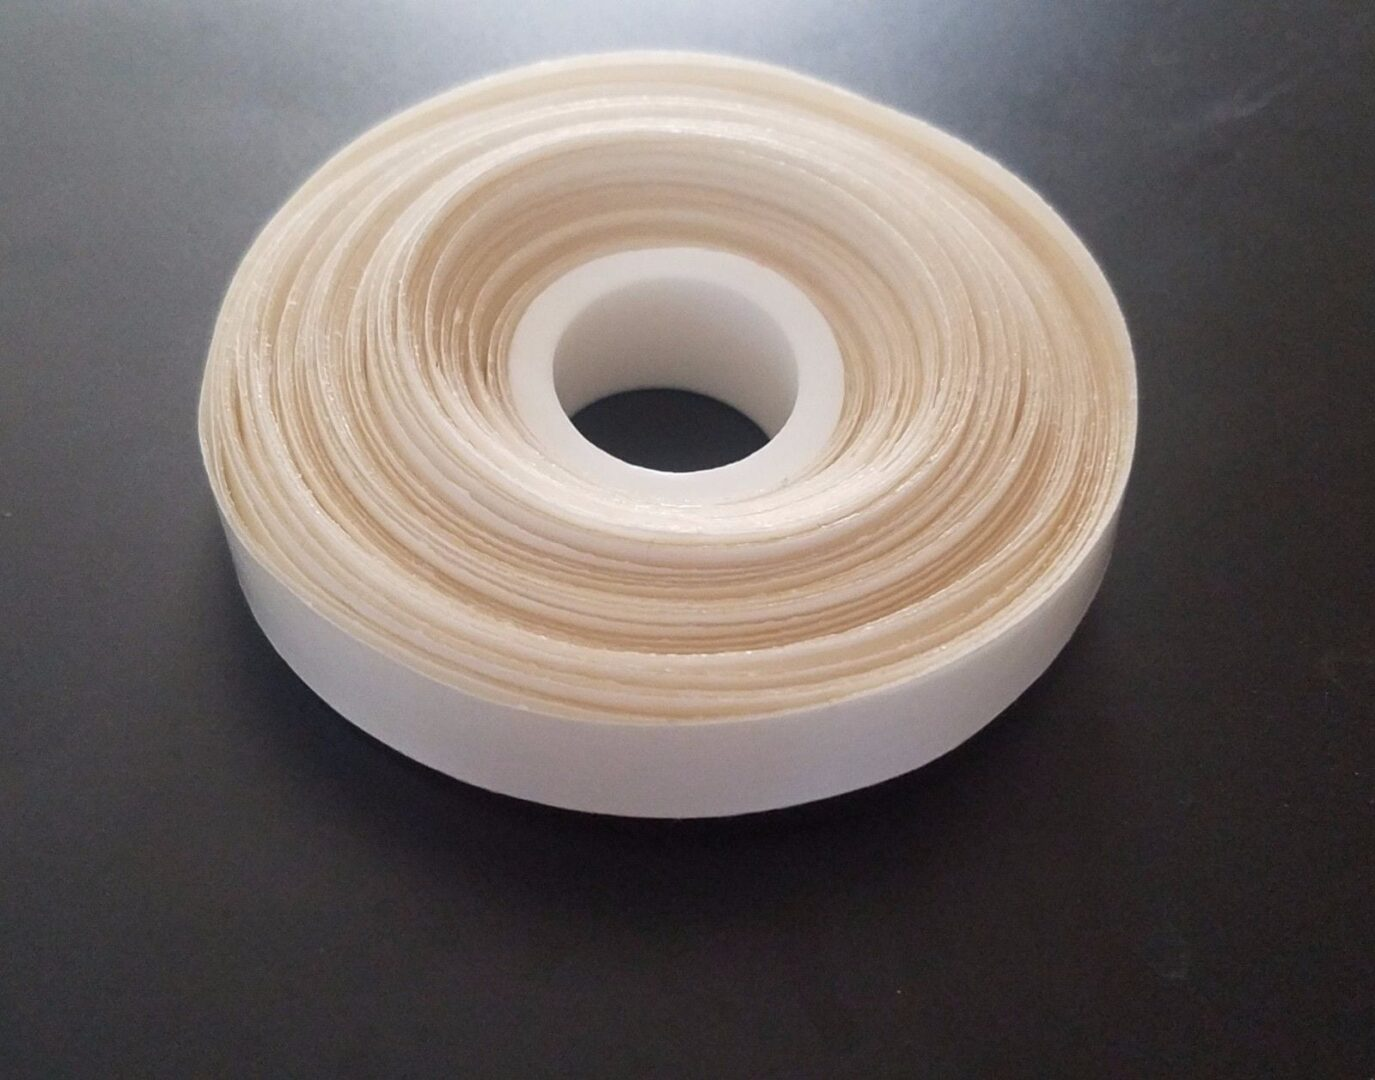 5 Yards Double Sided Adhesive Tape Replacement Roll For Tape In